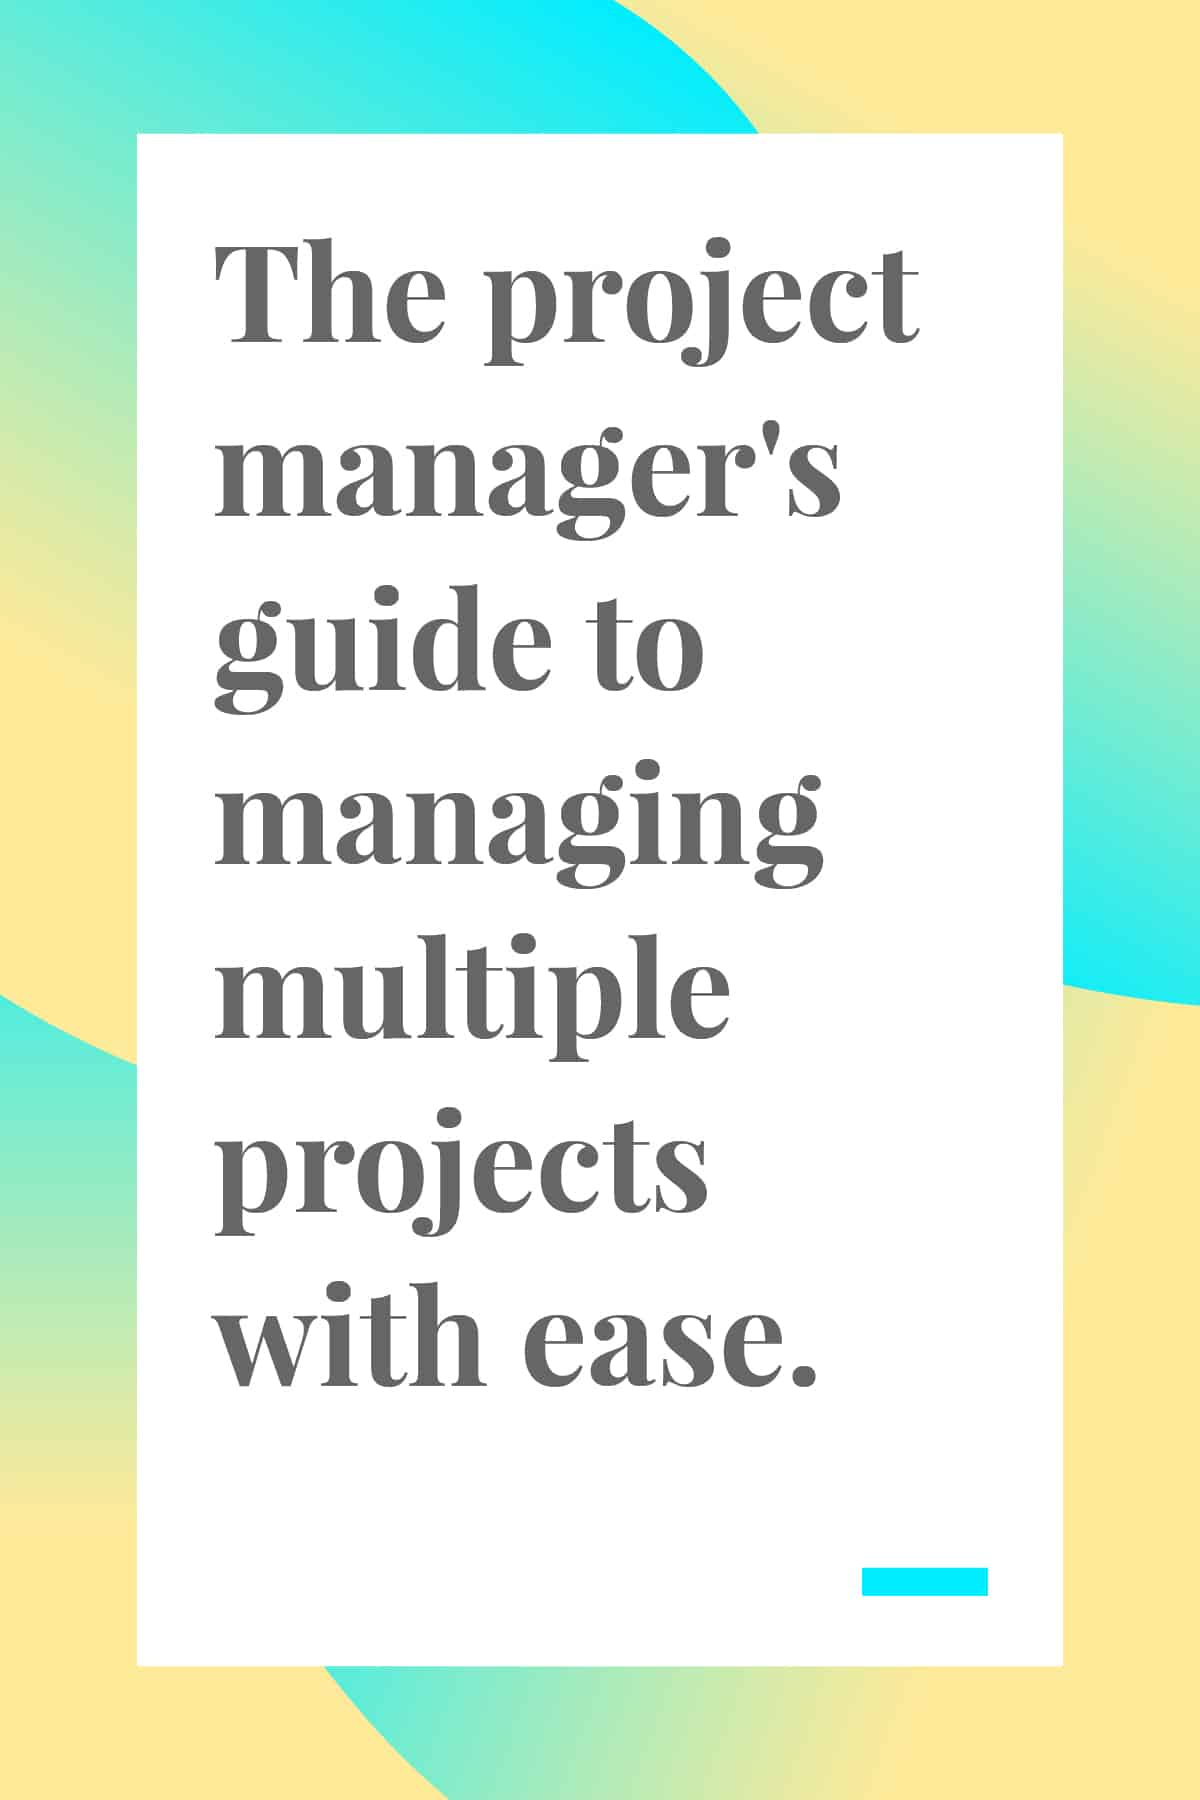 Managing multiple projects can be tough! Get everything done without losing your sanity with these useful tips. #management #projectmanagement